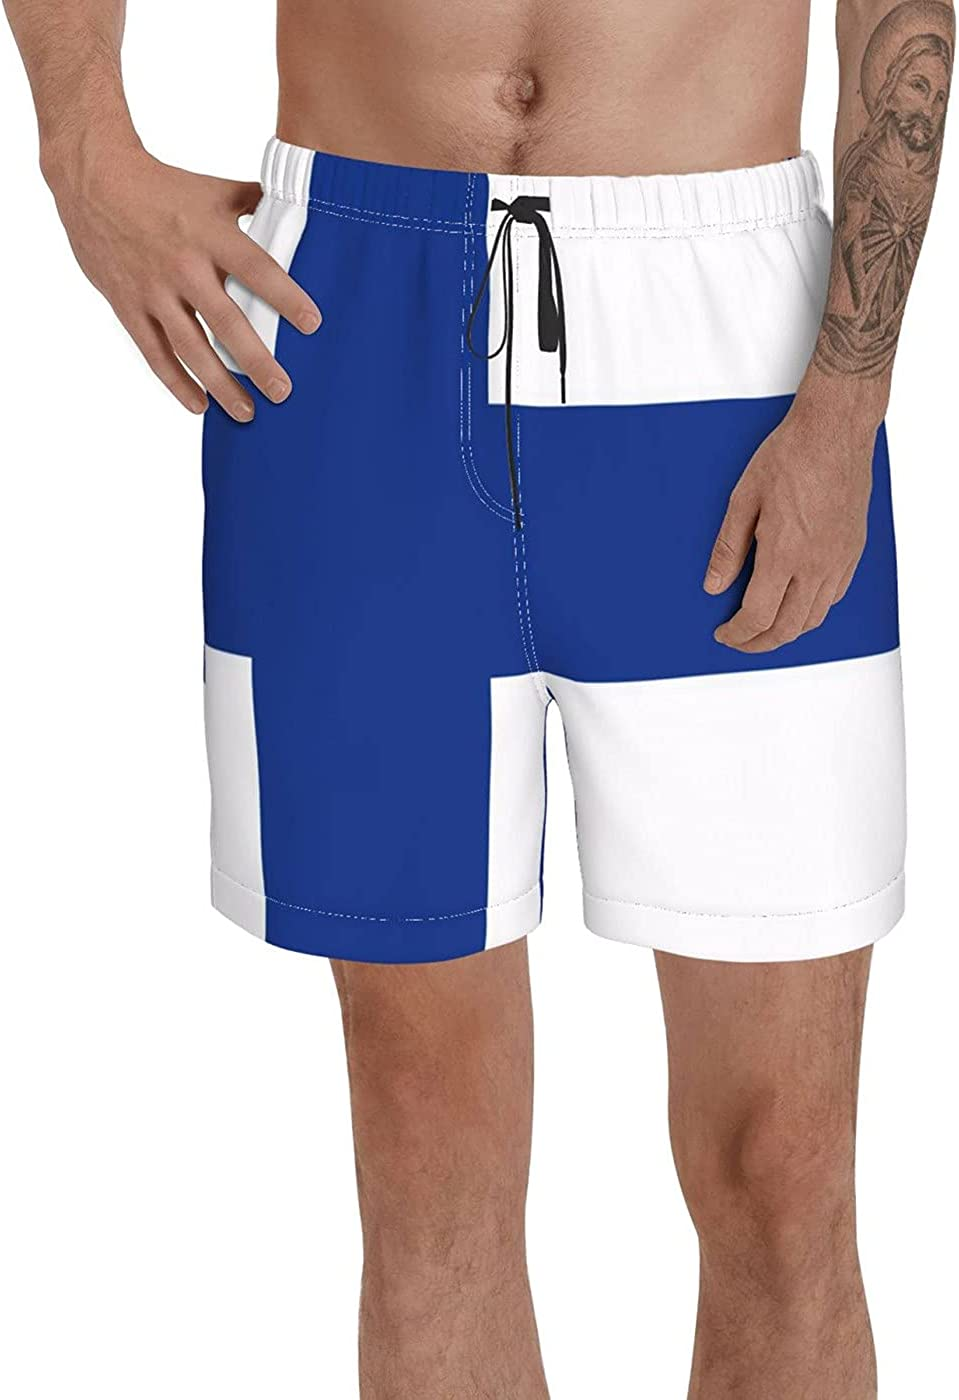 Count Finland Flag Men's 3D Printed Funny Summer Quick Dry Swim Short Board Shorts with